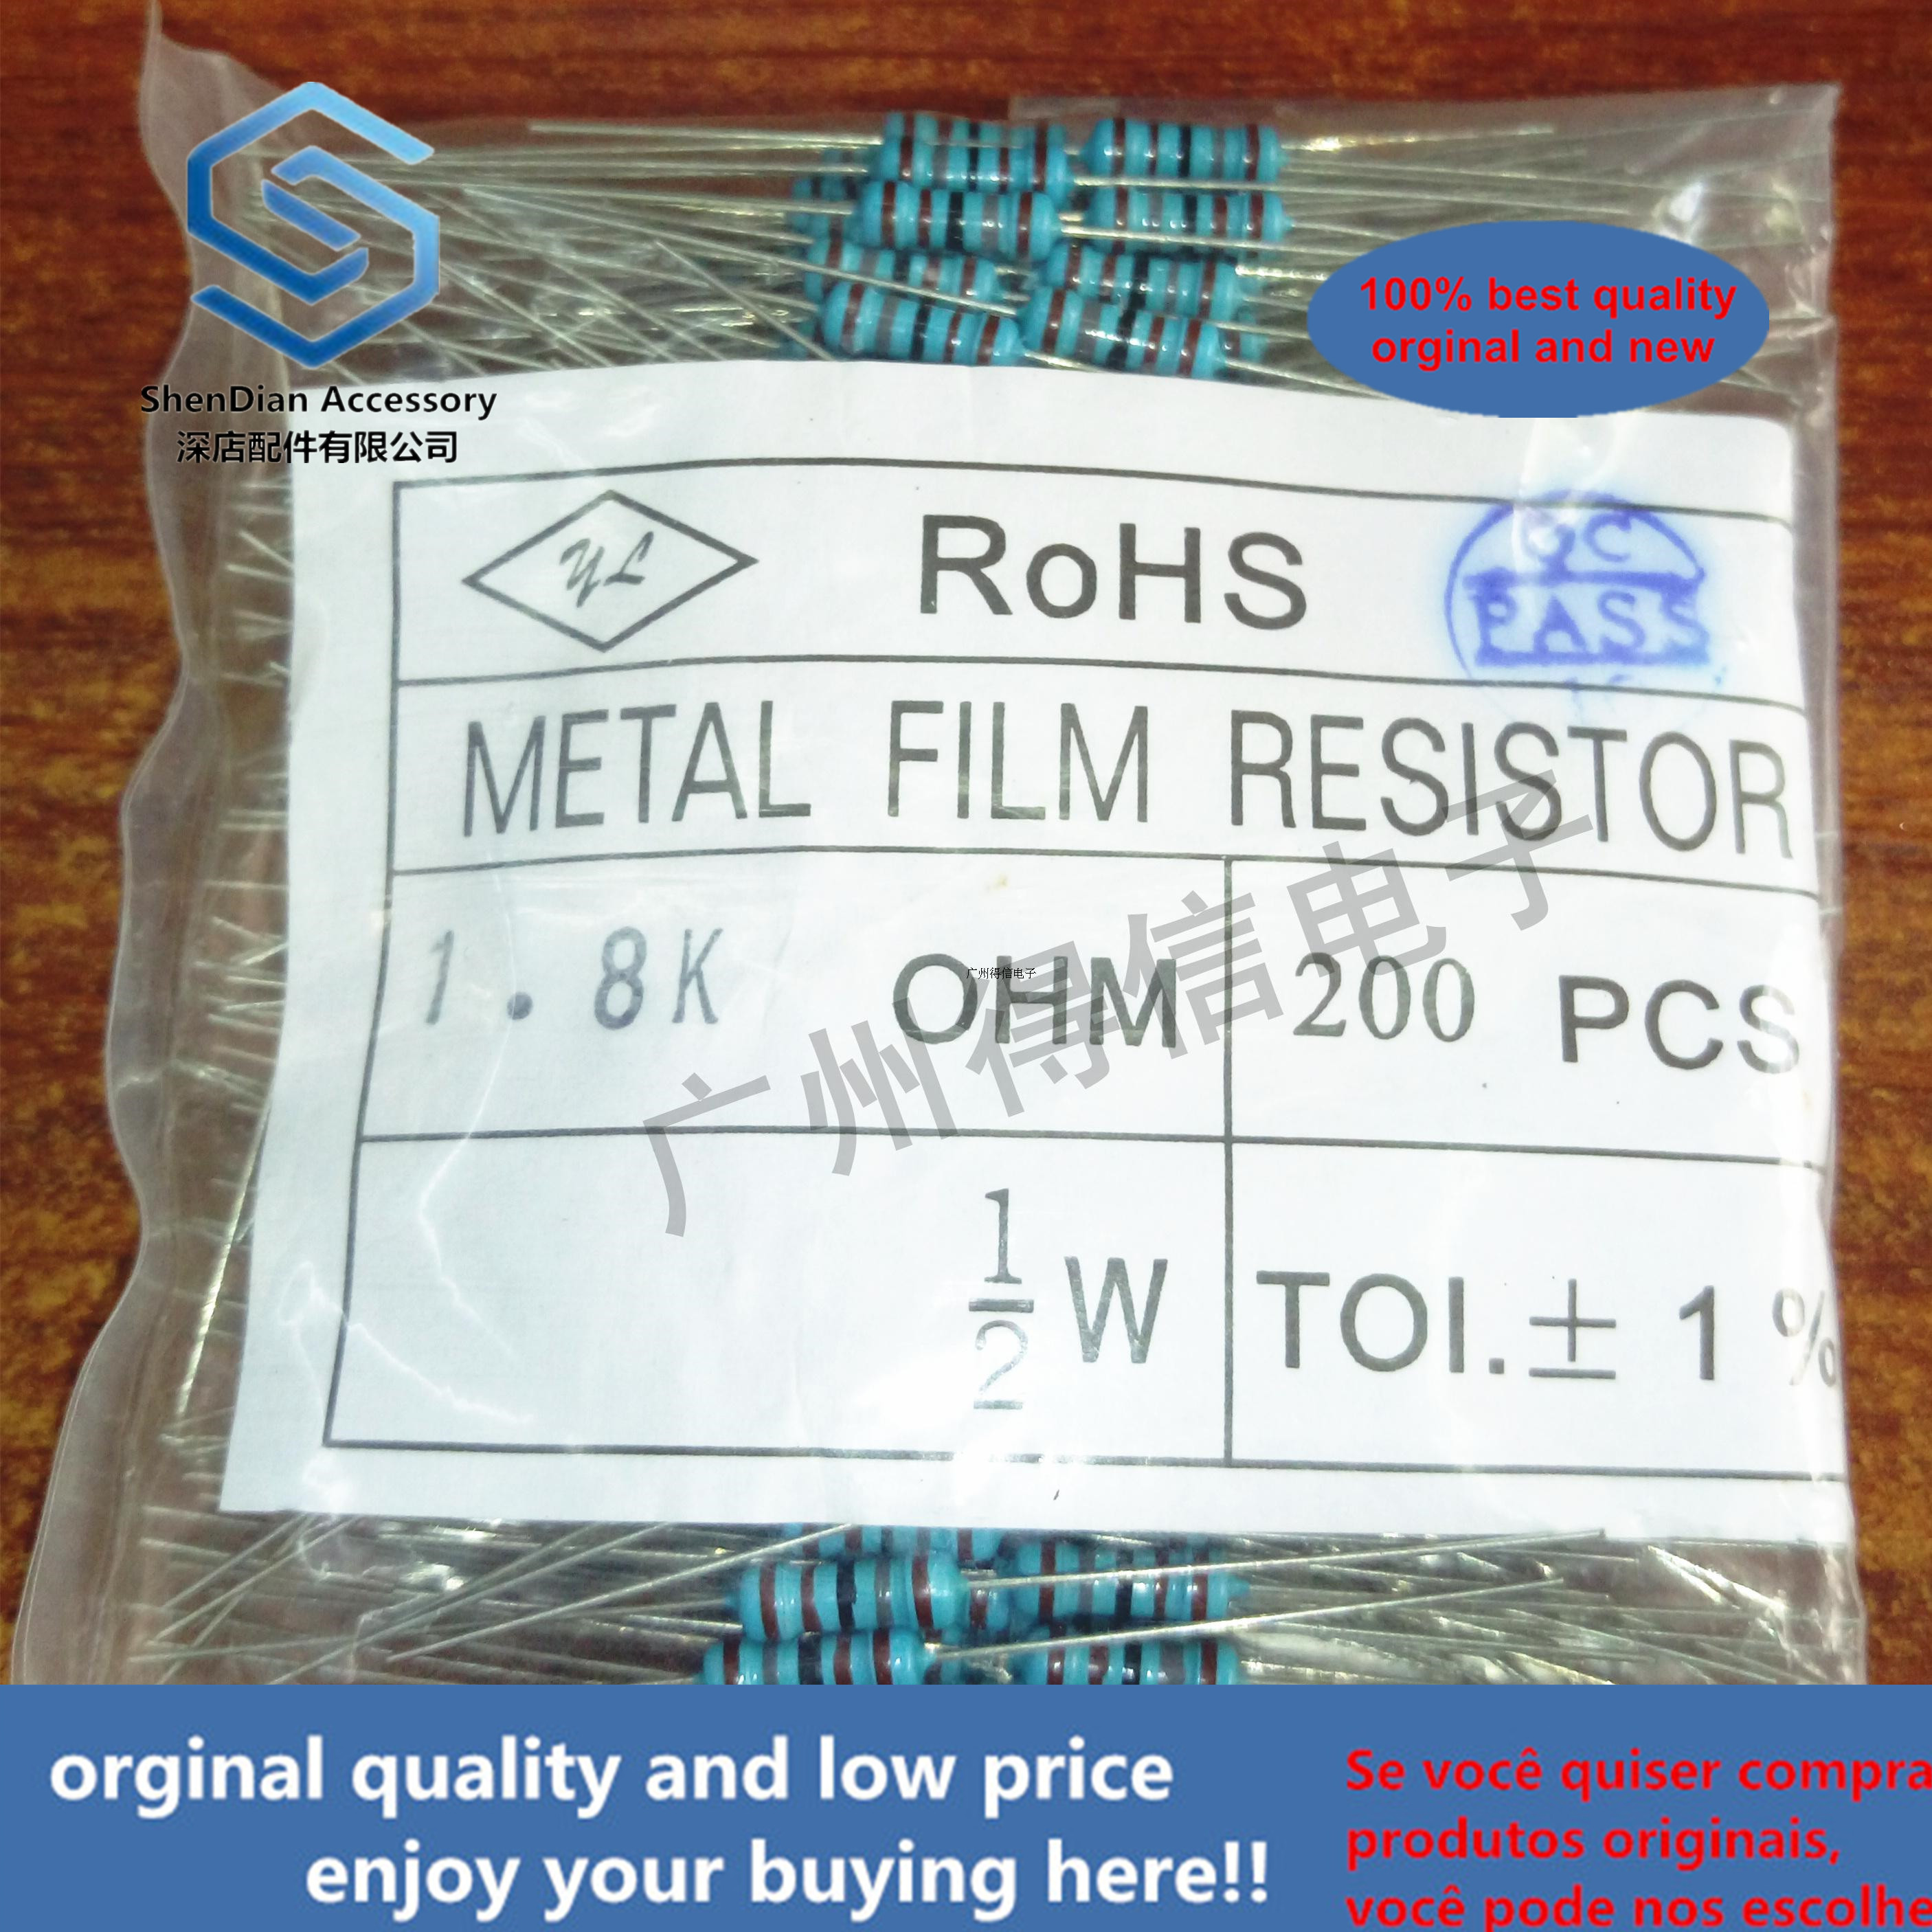 200pcs 1 / 2W 220R 220 Euro 1% Brand New Metal Film Iron Feet Resistor Bag 200 Pcs Per Pack